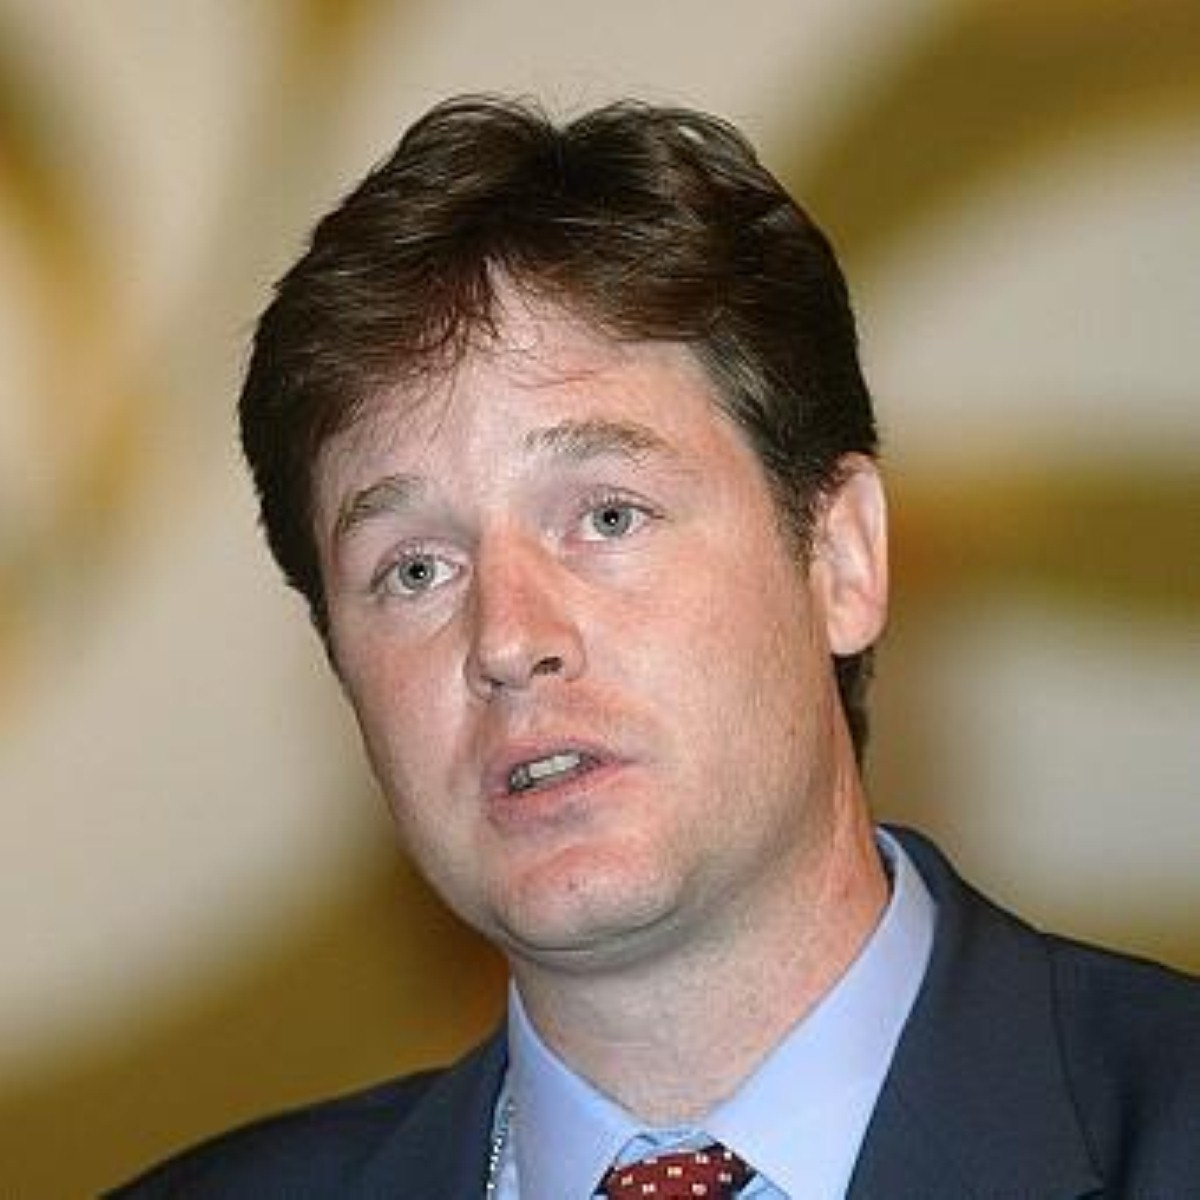 Clegg was put in charge of constitutional reform in the coalition agreement